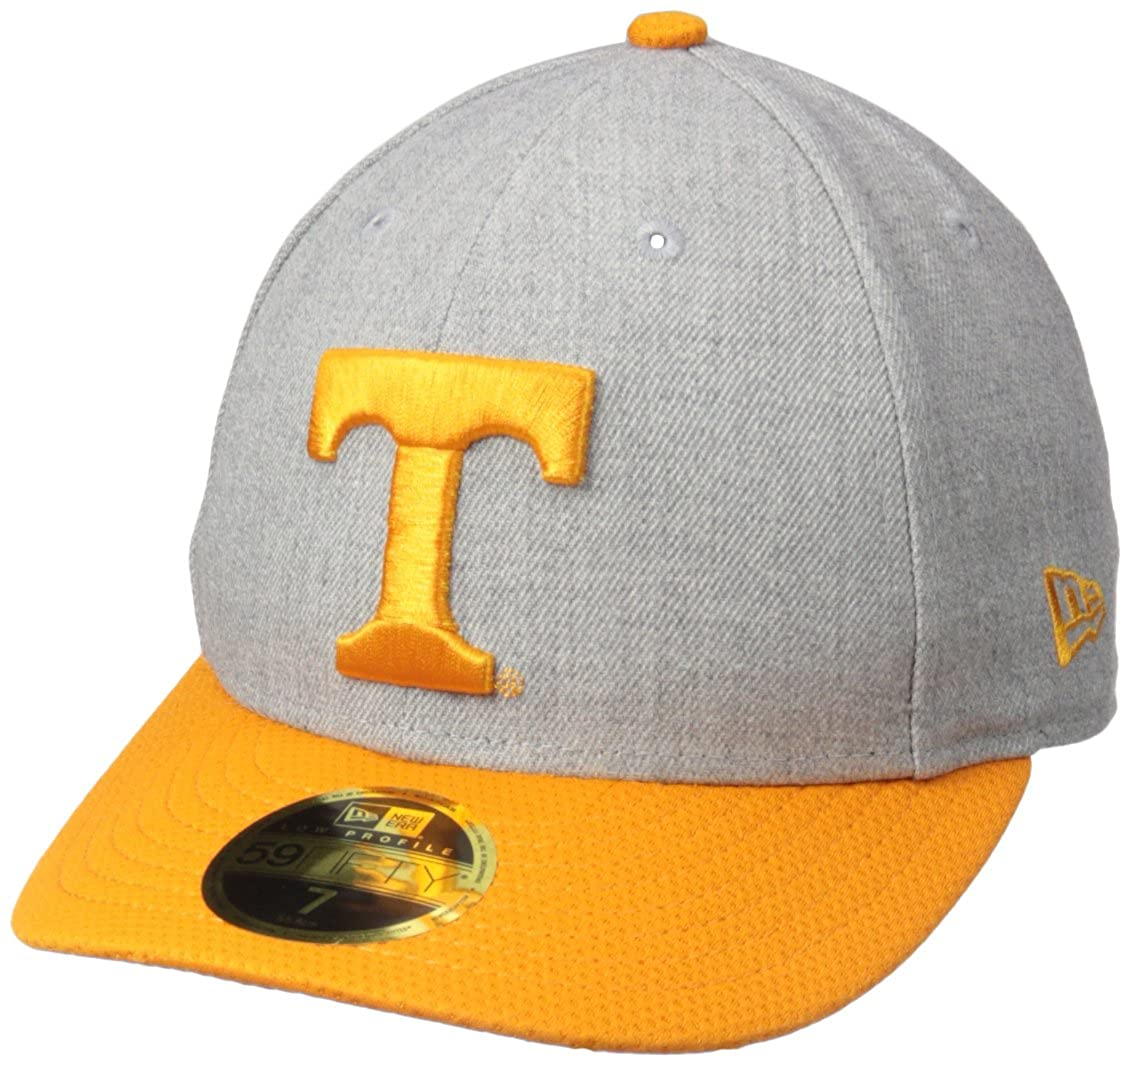 huge discount 507bd 4cae6 Amazon.com   New Era NCAA Adult Change Up Redux Low Profile 59FIFTY Fitted  Cap   Sports   Outdoors